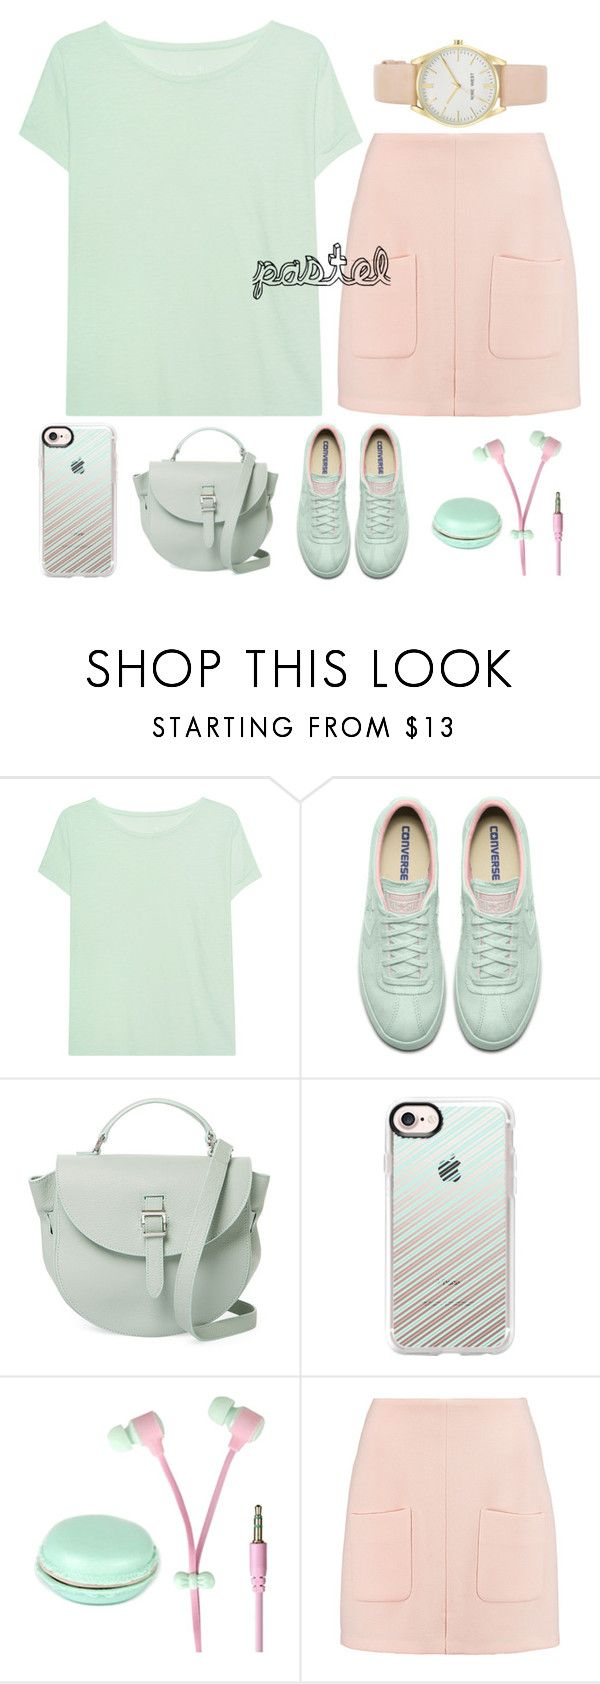 """""""10.05.2017"""" by renyic ❤ liked on Polyvore featuring Juvia, Meli Melo, Casetify, See by Chloé, Nine West, Pink, GREEN, pastel, outfits and women"""